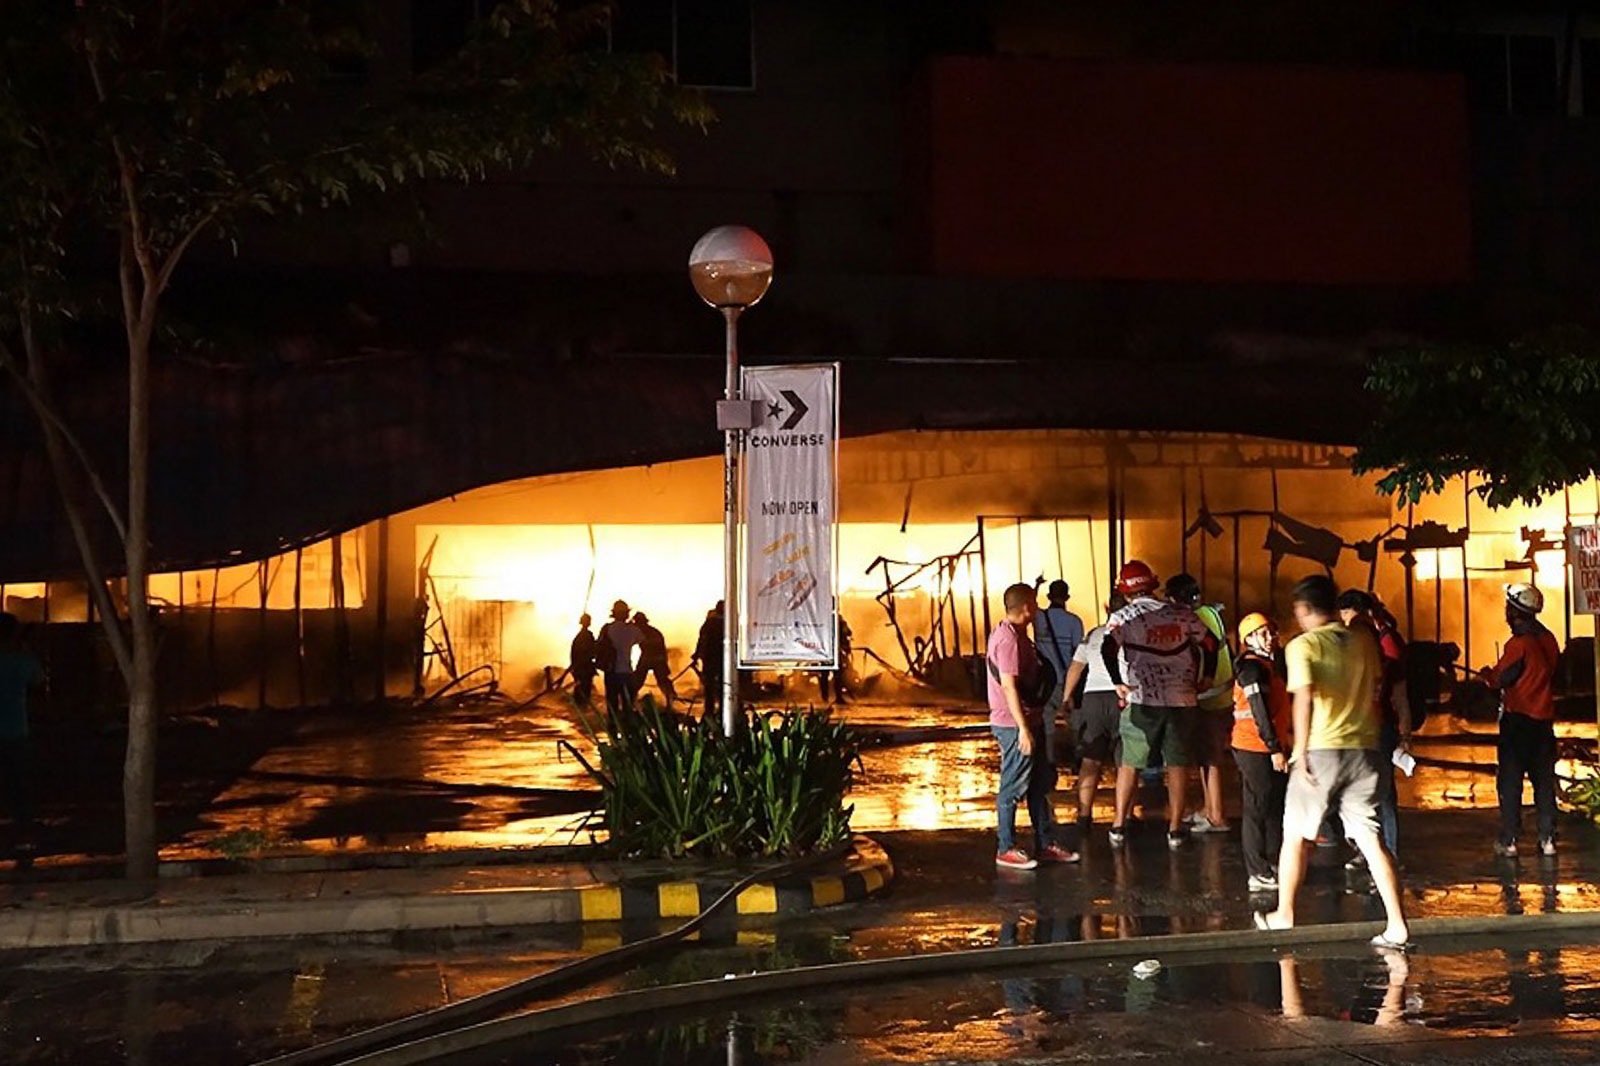 PANIC. A strong and shallow earthquake hit the southern Philippines, sending hundreds rushing out of a shopping mall where a local television said an elderly man was injured. Photo by Edwin Espejo/AFP